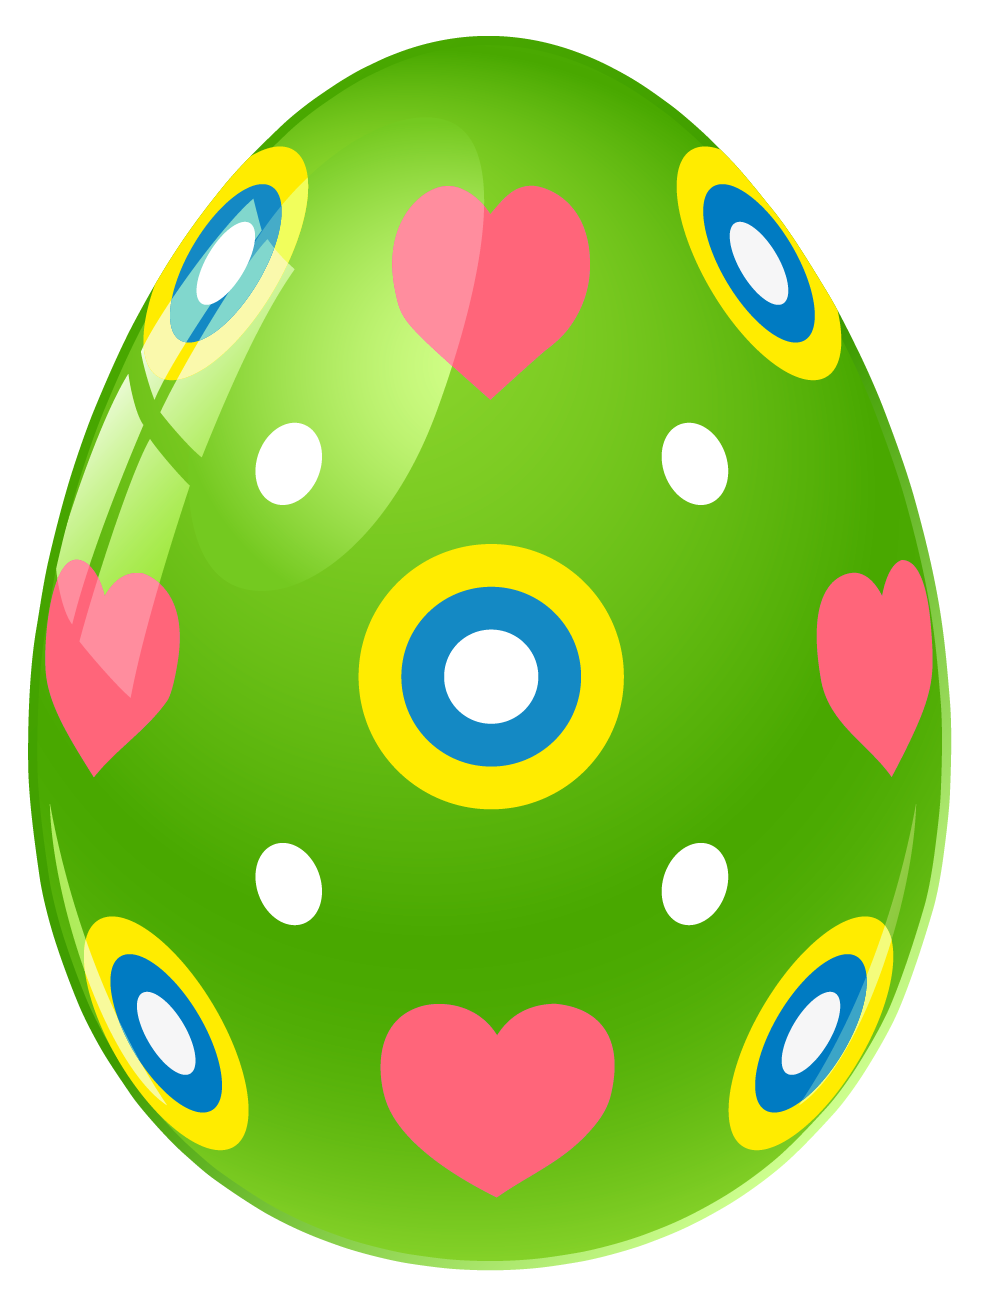 Free Easter Egg Clip Art - Cliparts.co